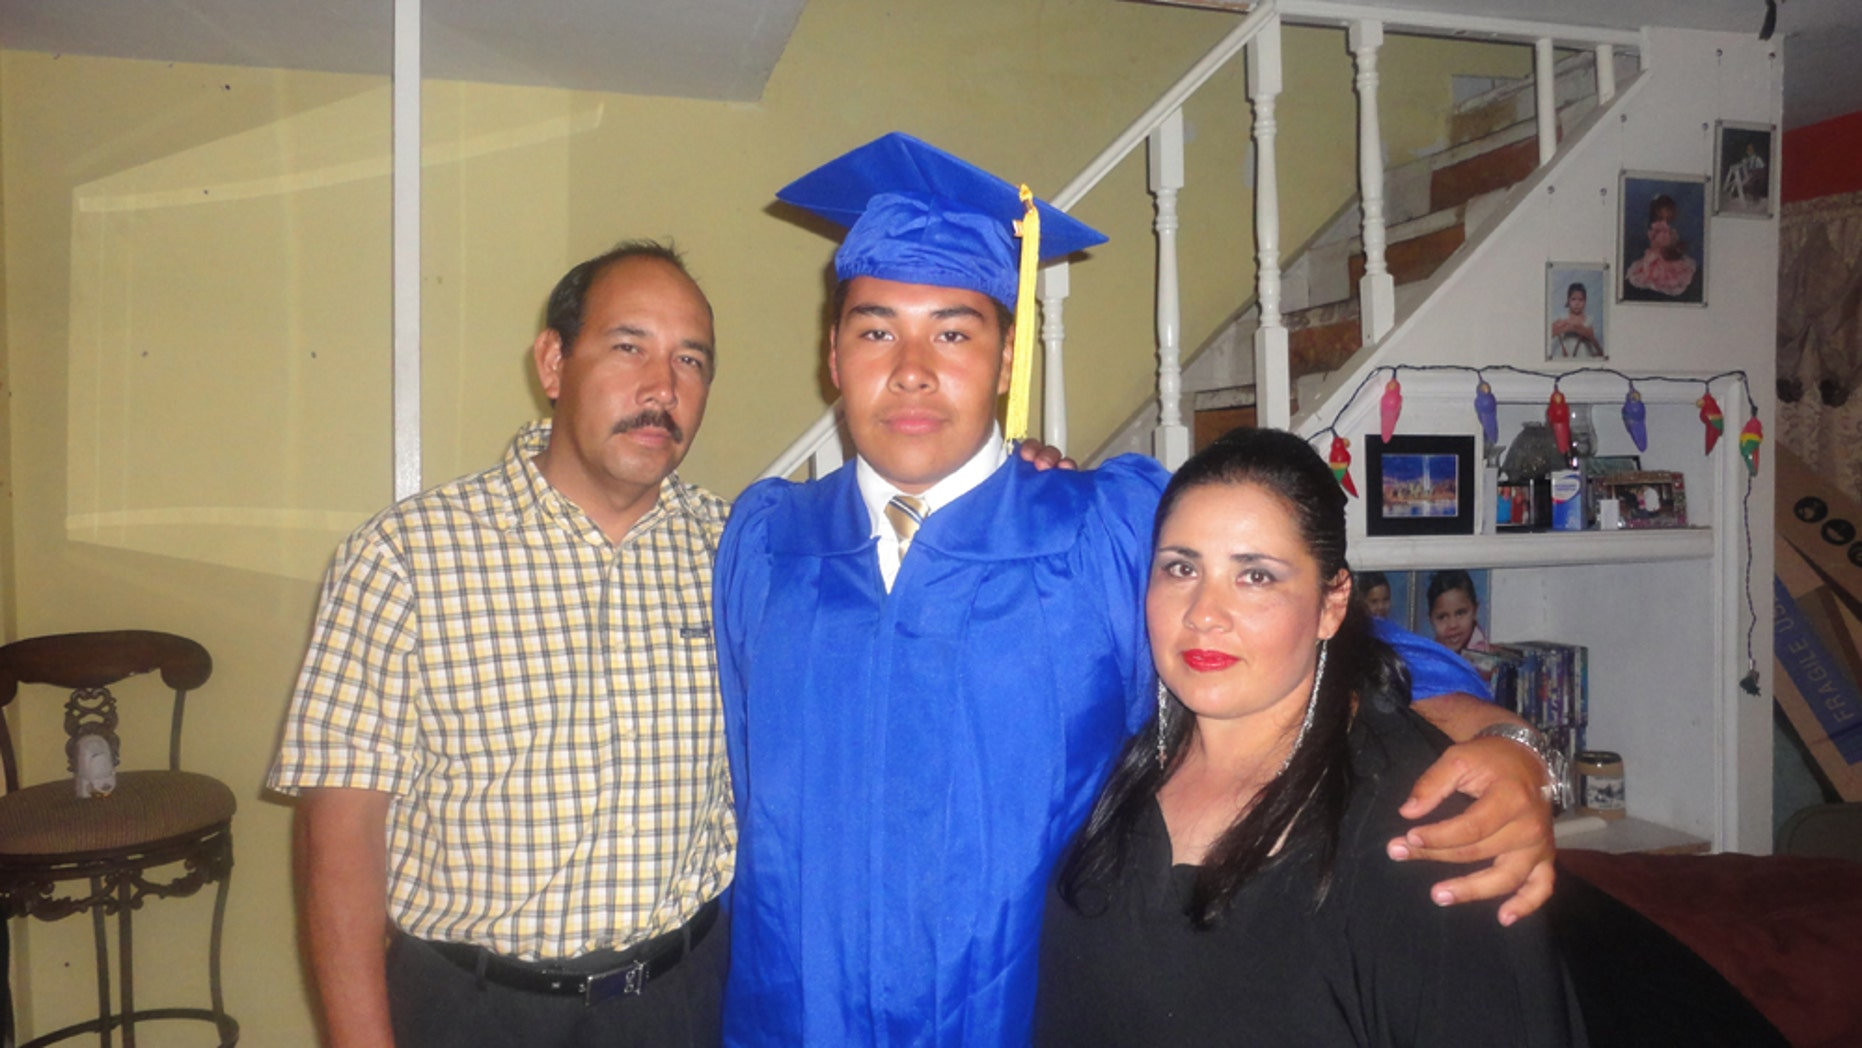 Marcos Muñoz and his parents. Muñoz traveled to Tijuana after his graduation ceremony to celebrate his graduation with the people he loves the most.